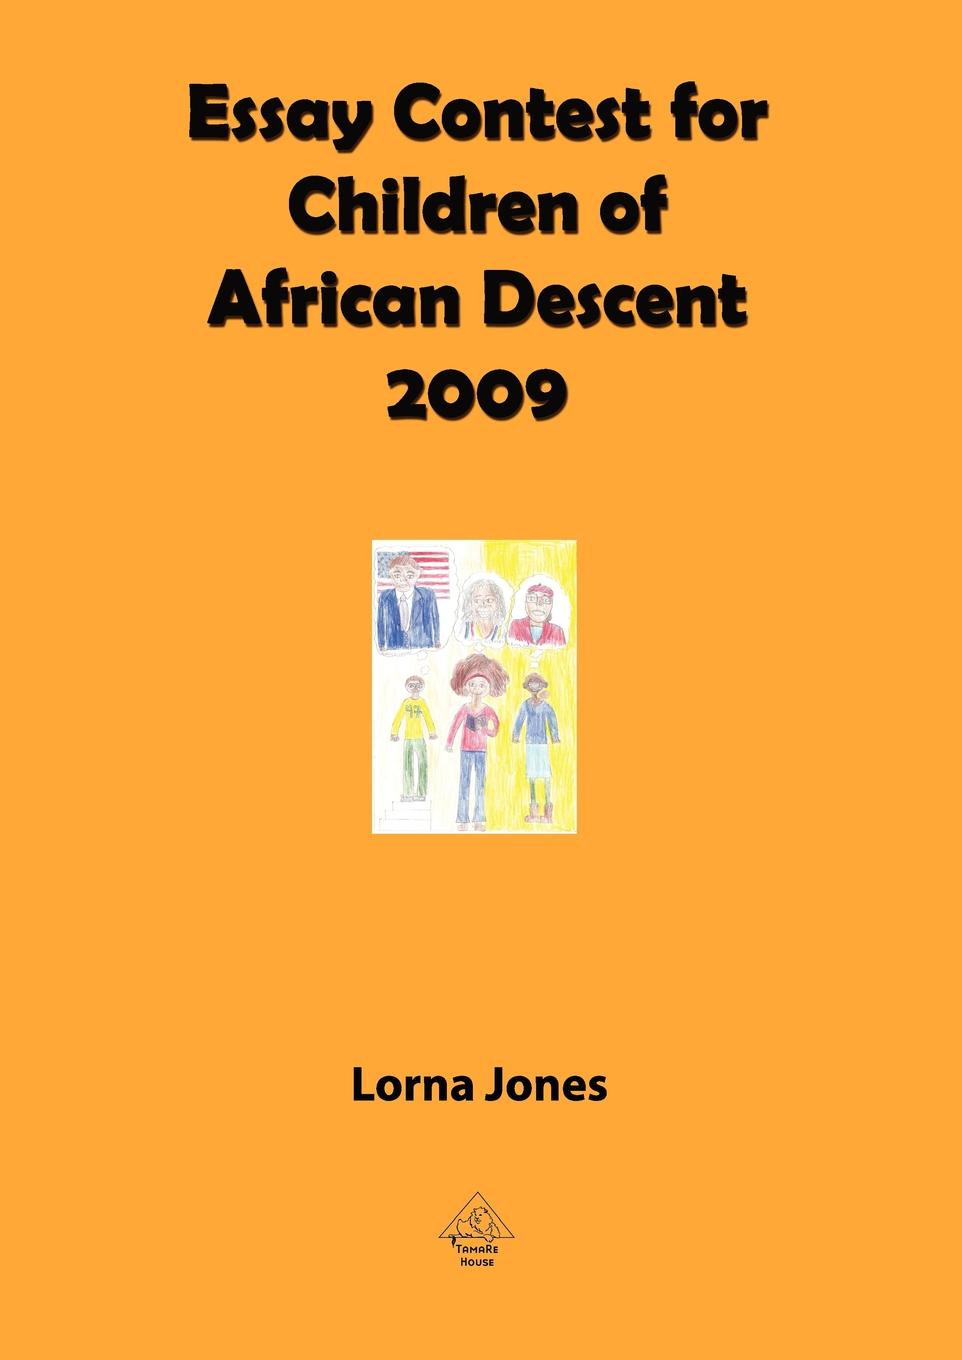 Essay Contest for Children of African Descent (2009)